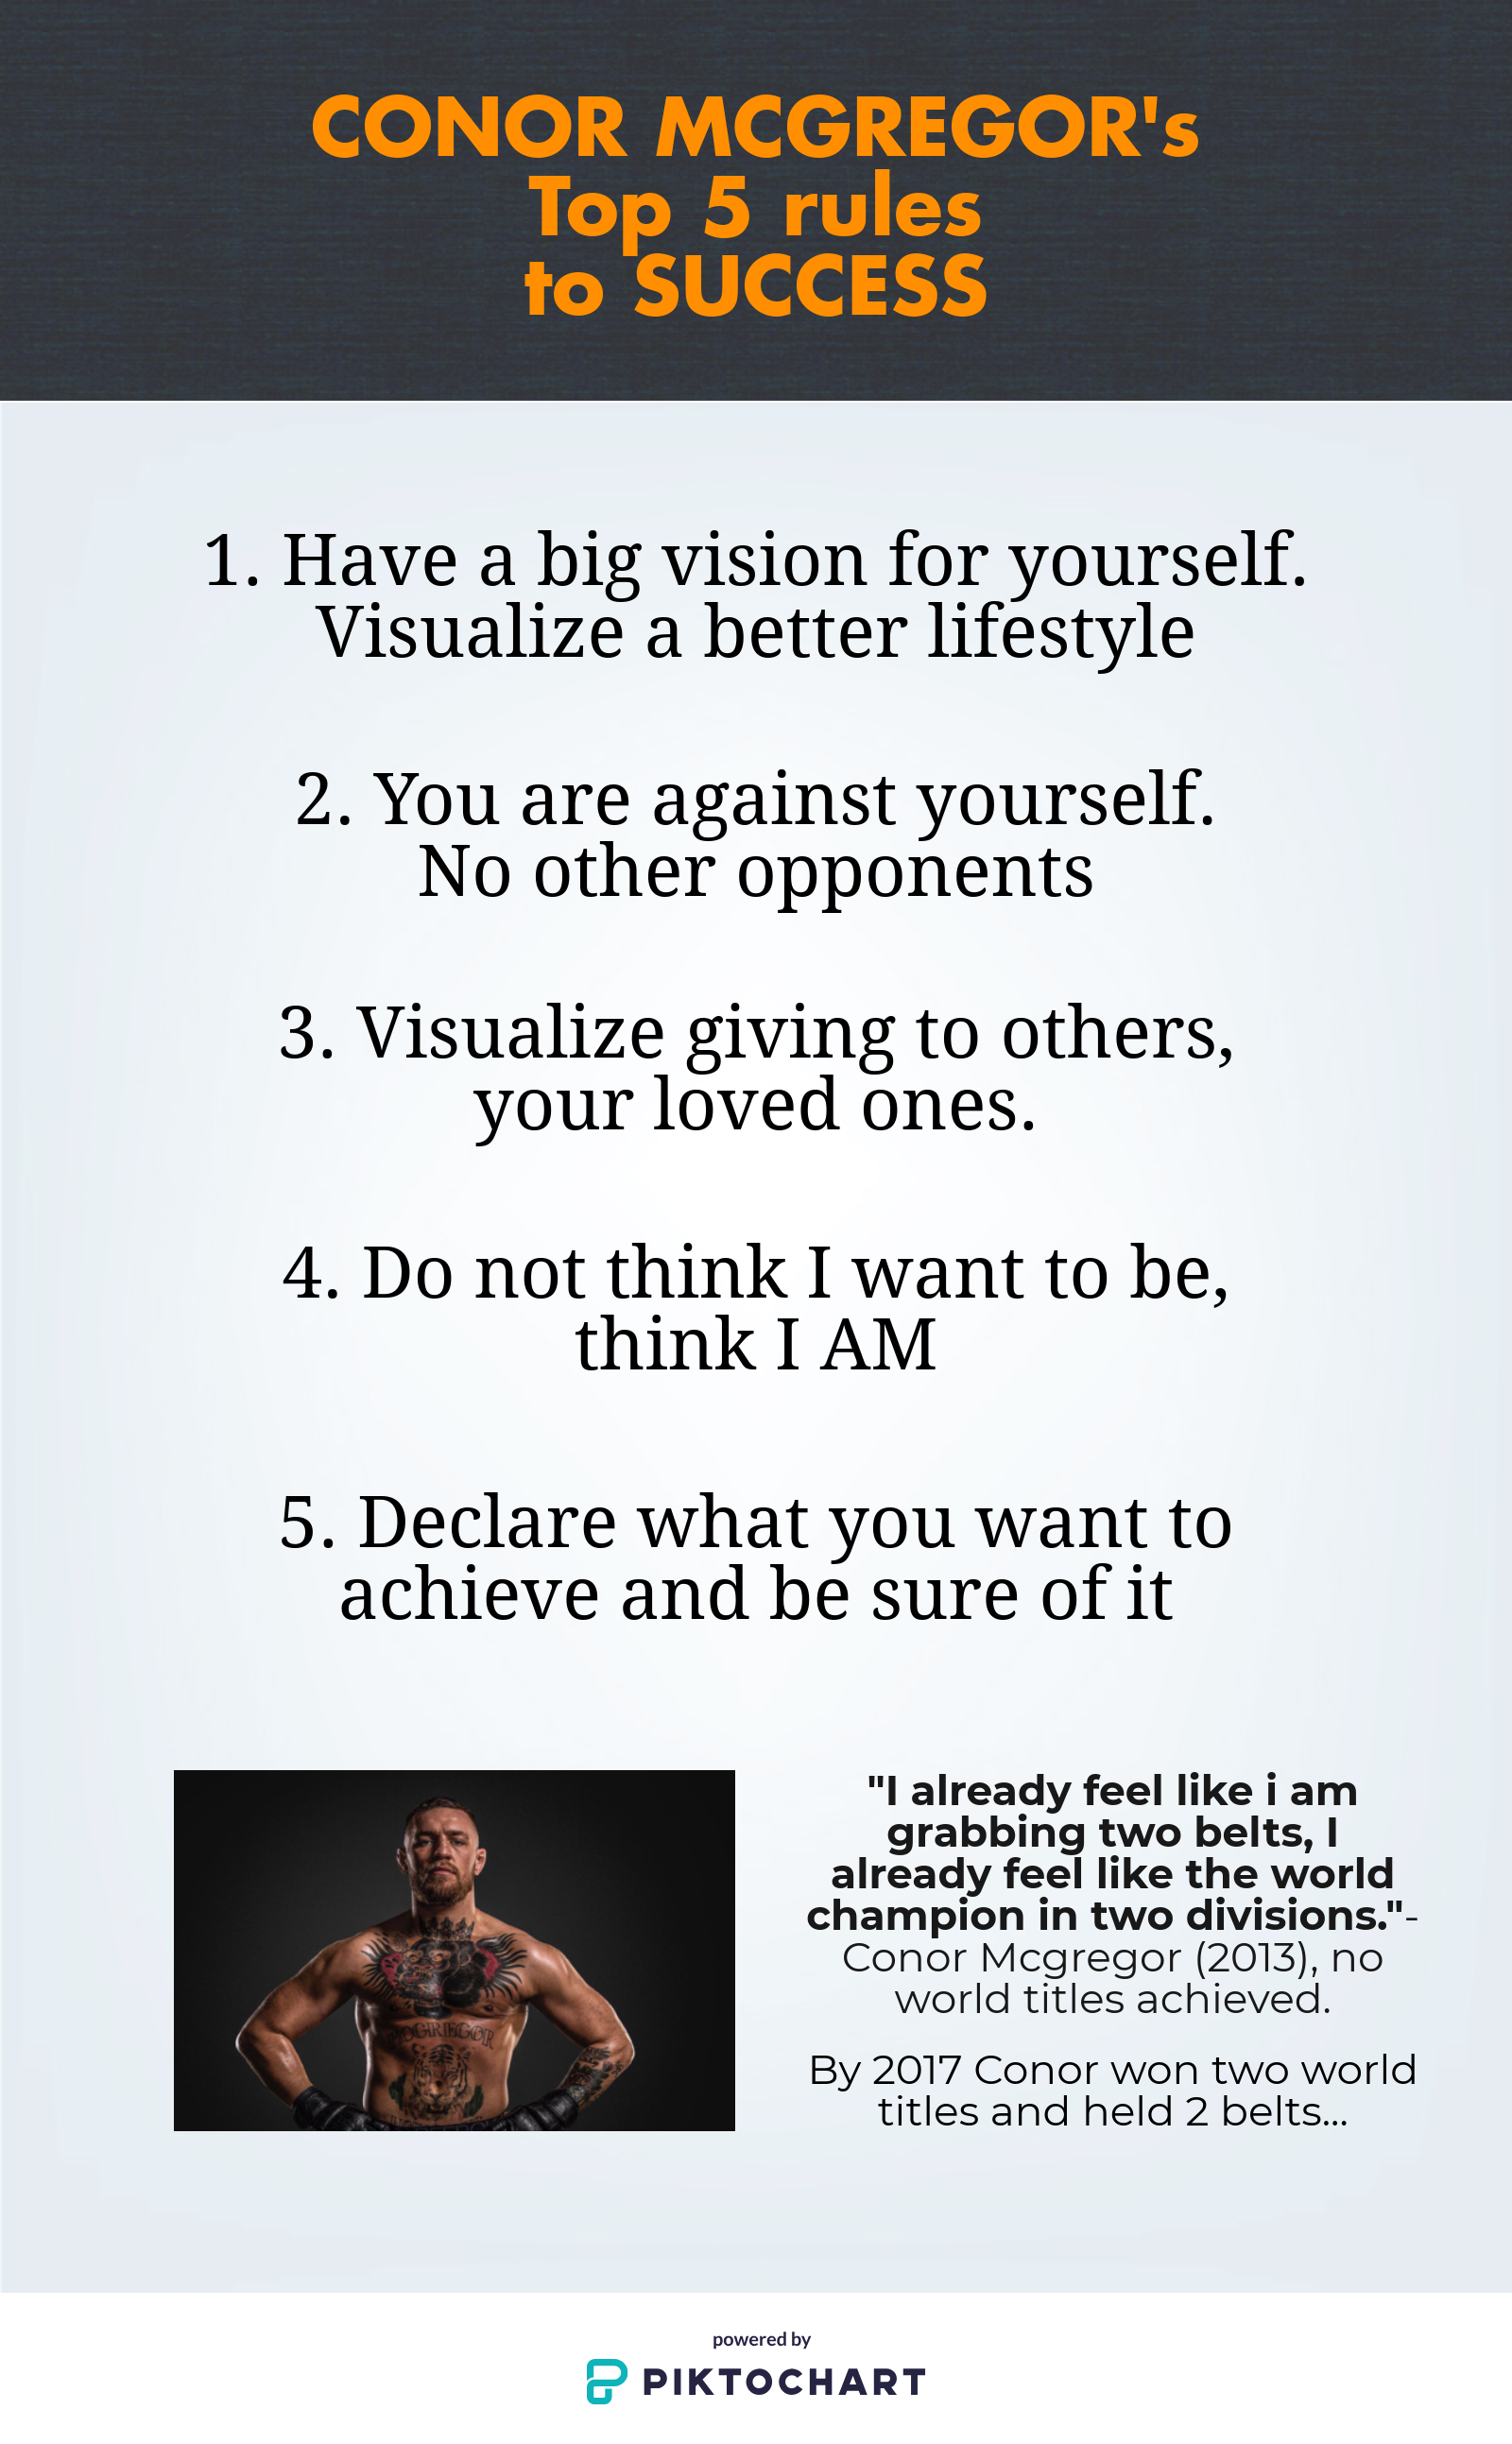 Conor Mcgregor S 5 Rules To Success Conor Speaks And Explains His Top 5 Rules That Enable Him To Be Successful Achieve H Conor Mcgregor Success Visualisation